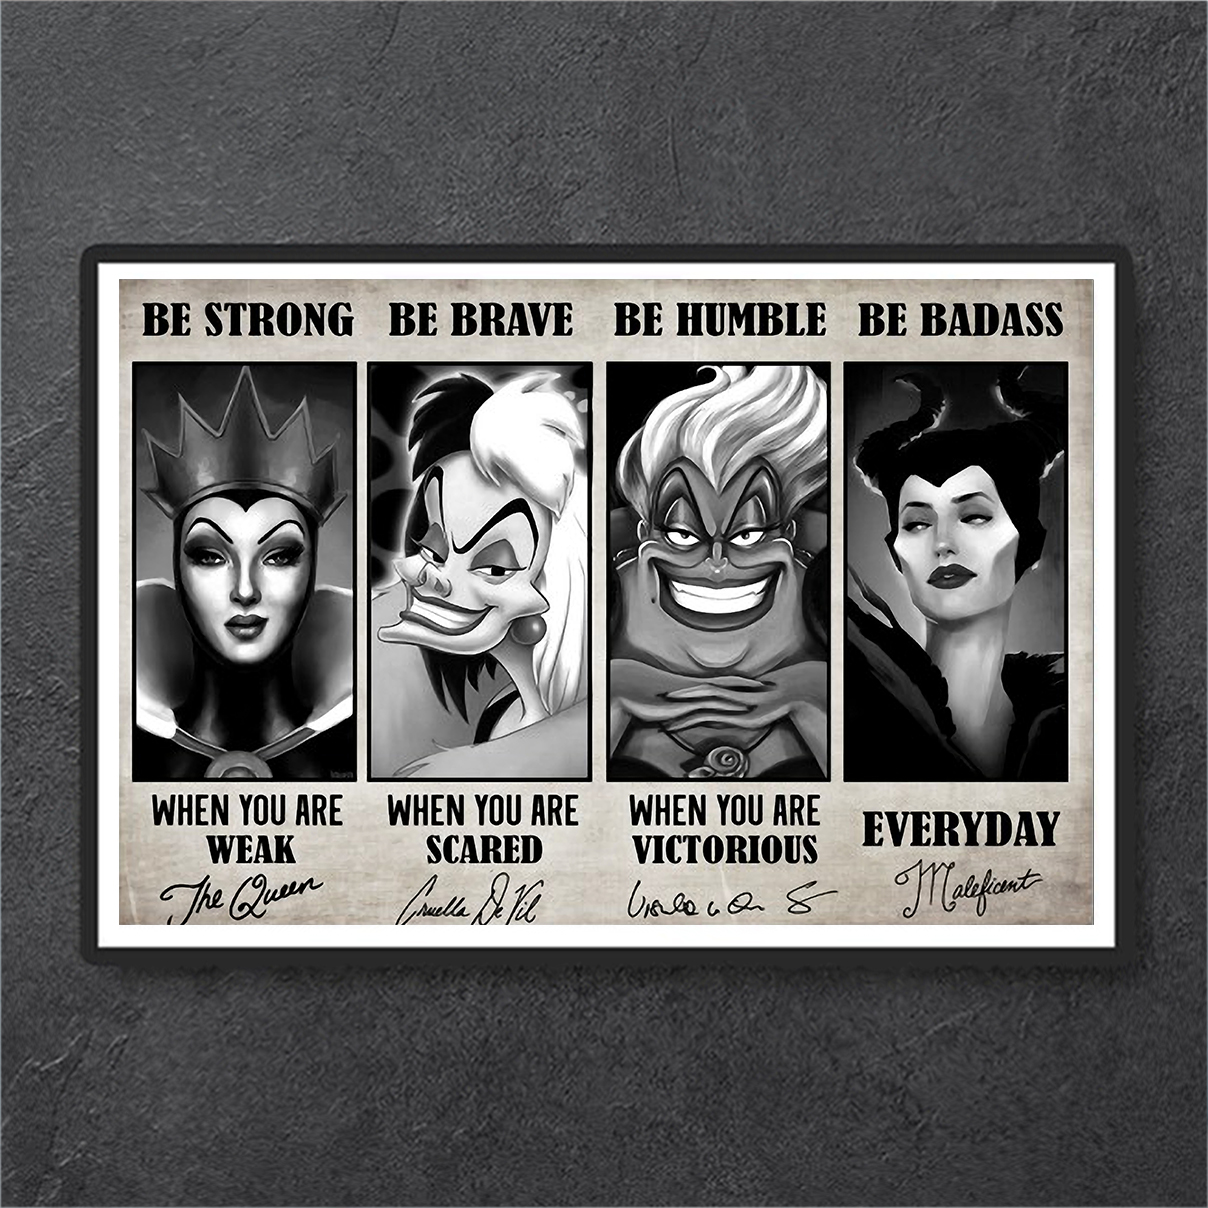 Evil queen Cruella de Vil ursula maleficent be strong be brave be humble be badass canvas small